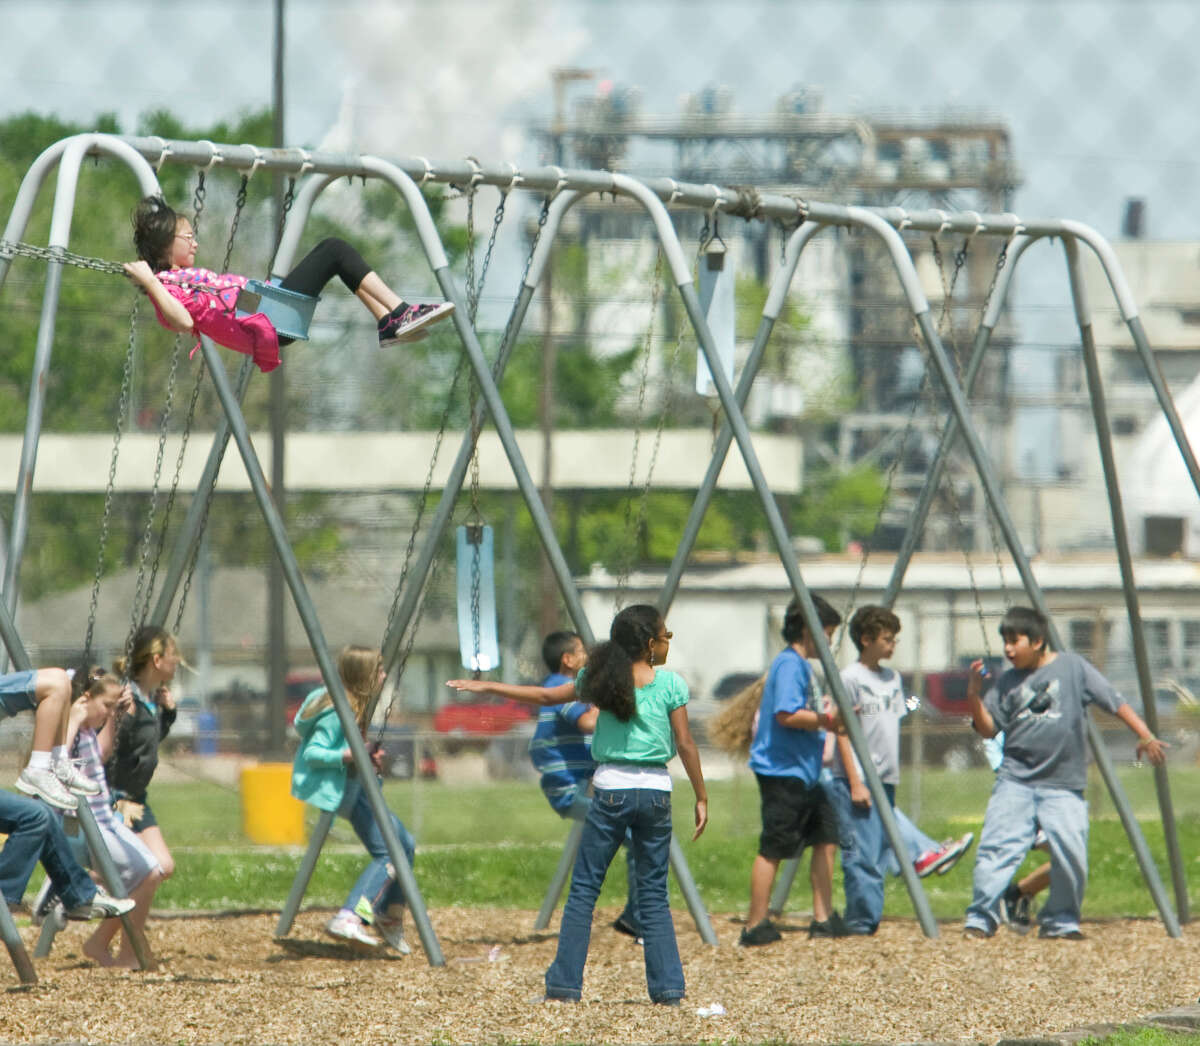 Students play on swing sets, outside of San Jacinto Elementary School in Deer Park (601 E. 8th Street, which is located across 255 from refineries.) Tuesday, March 31, 2009. ( Karen Warren / Chronicle )